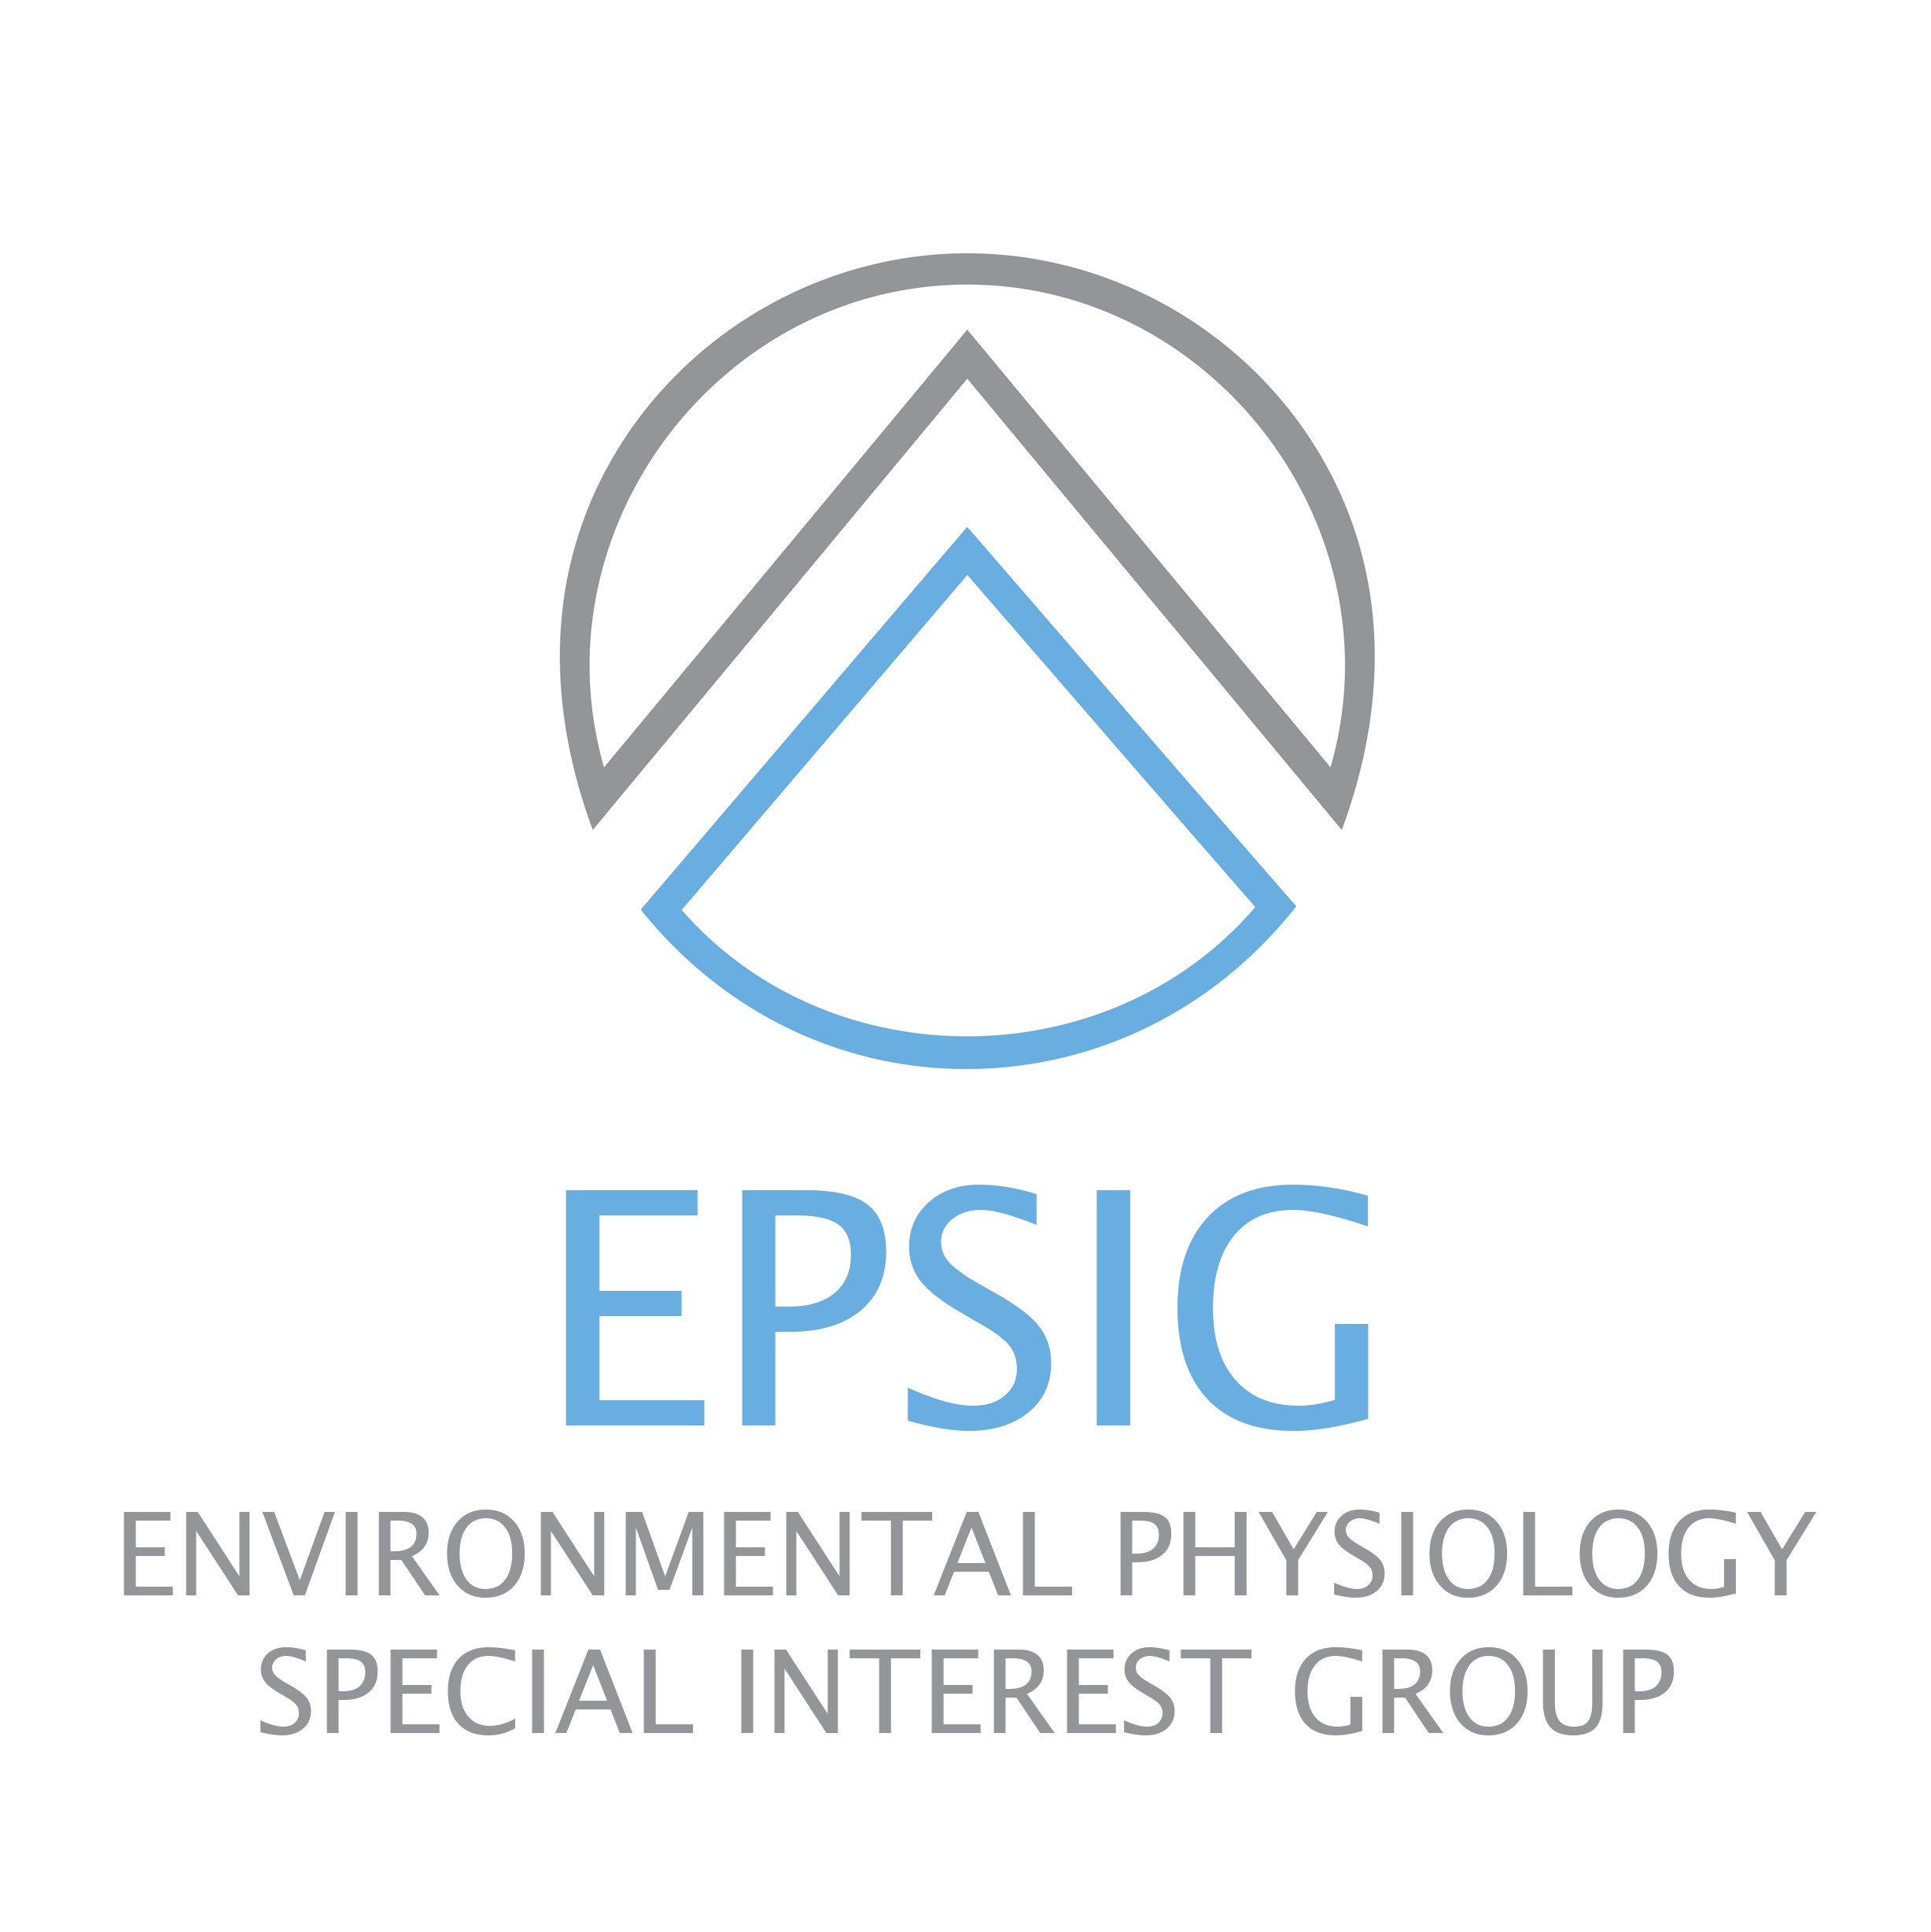 environmental physiology special interest group